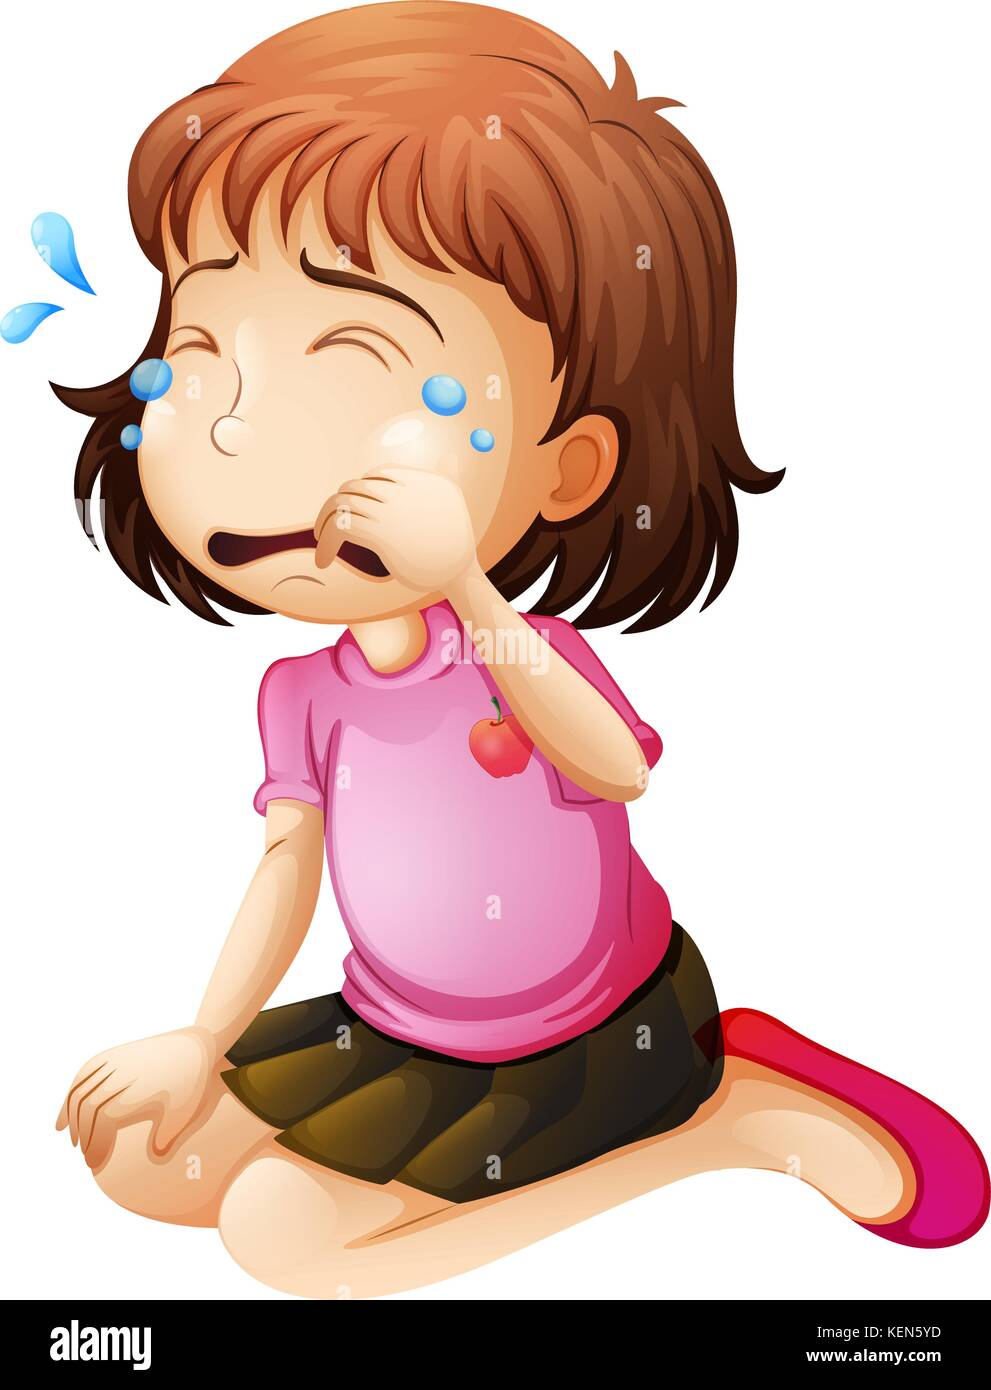 Illustration of a little girl crying on a white background - Stock Vector